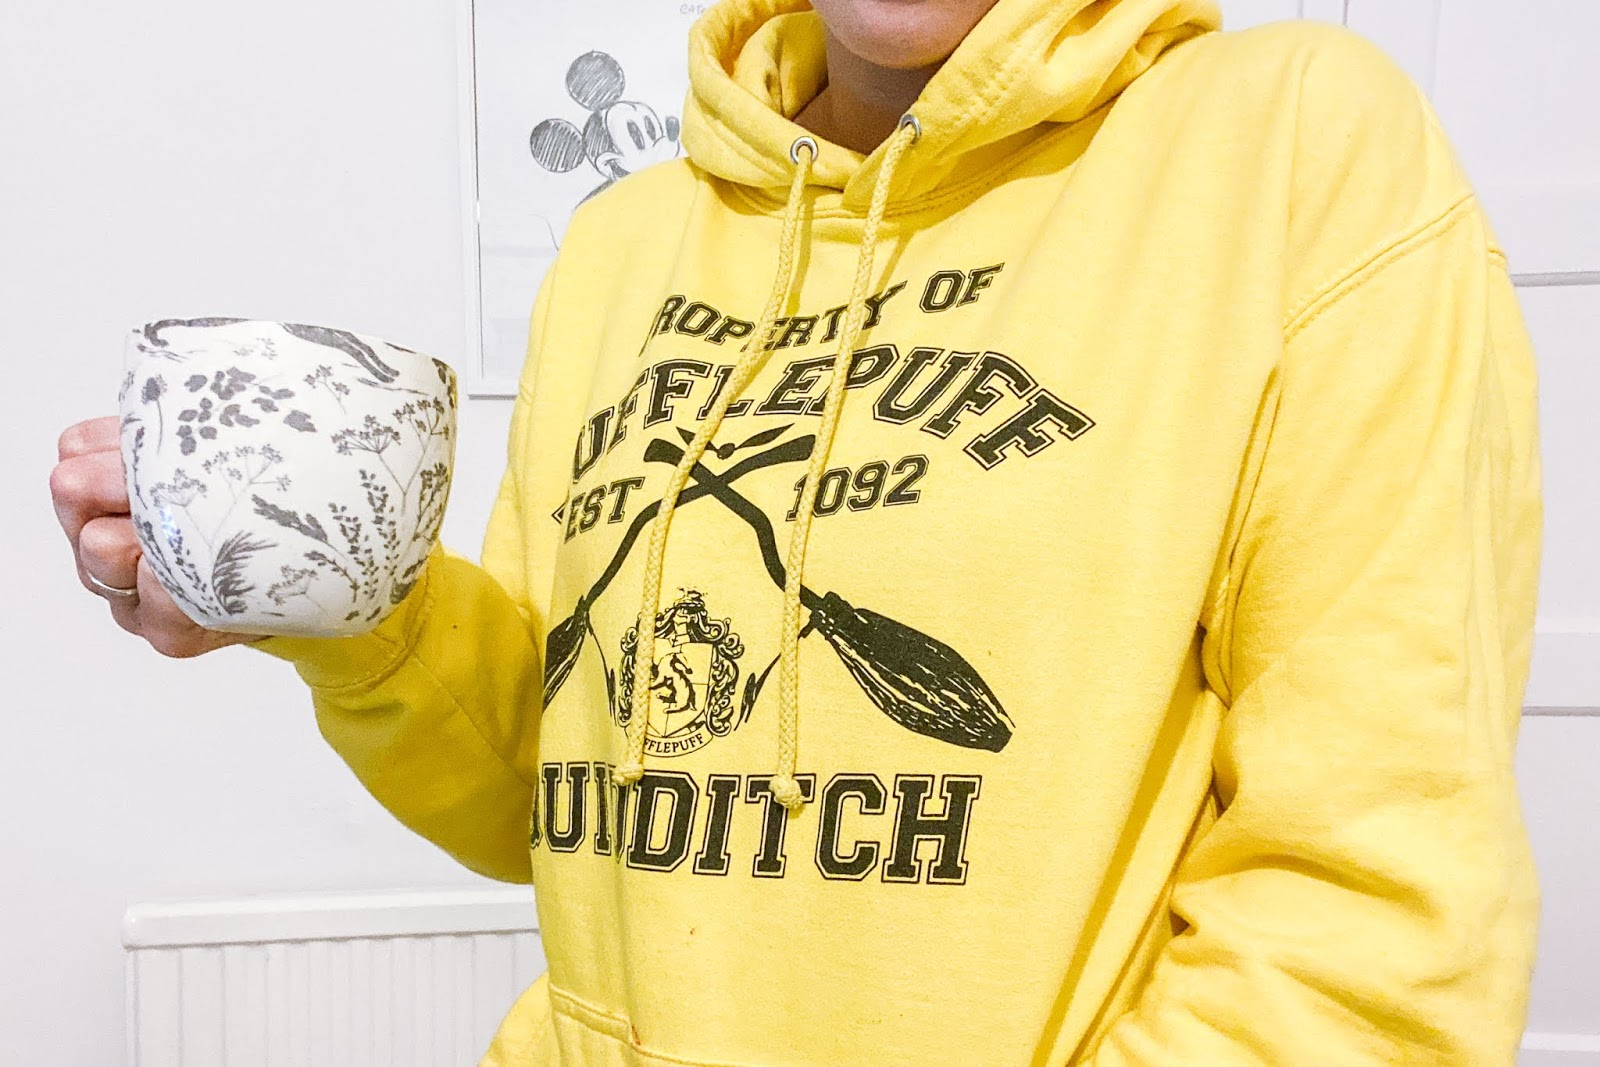 Girl wearing a yellow Hufflepuff hoodie holding a mug of tea.